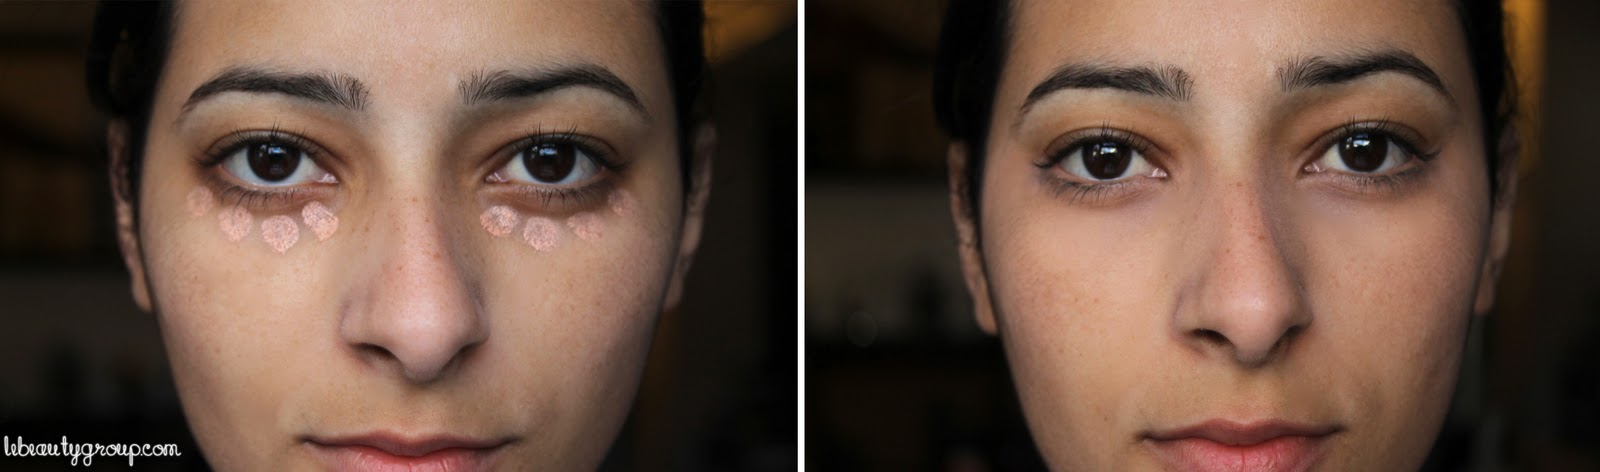 how to make bags under your eyes less visible